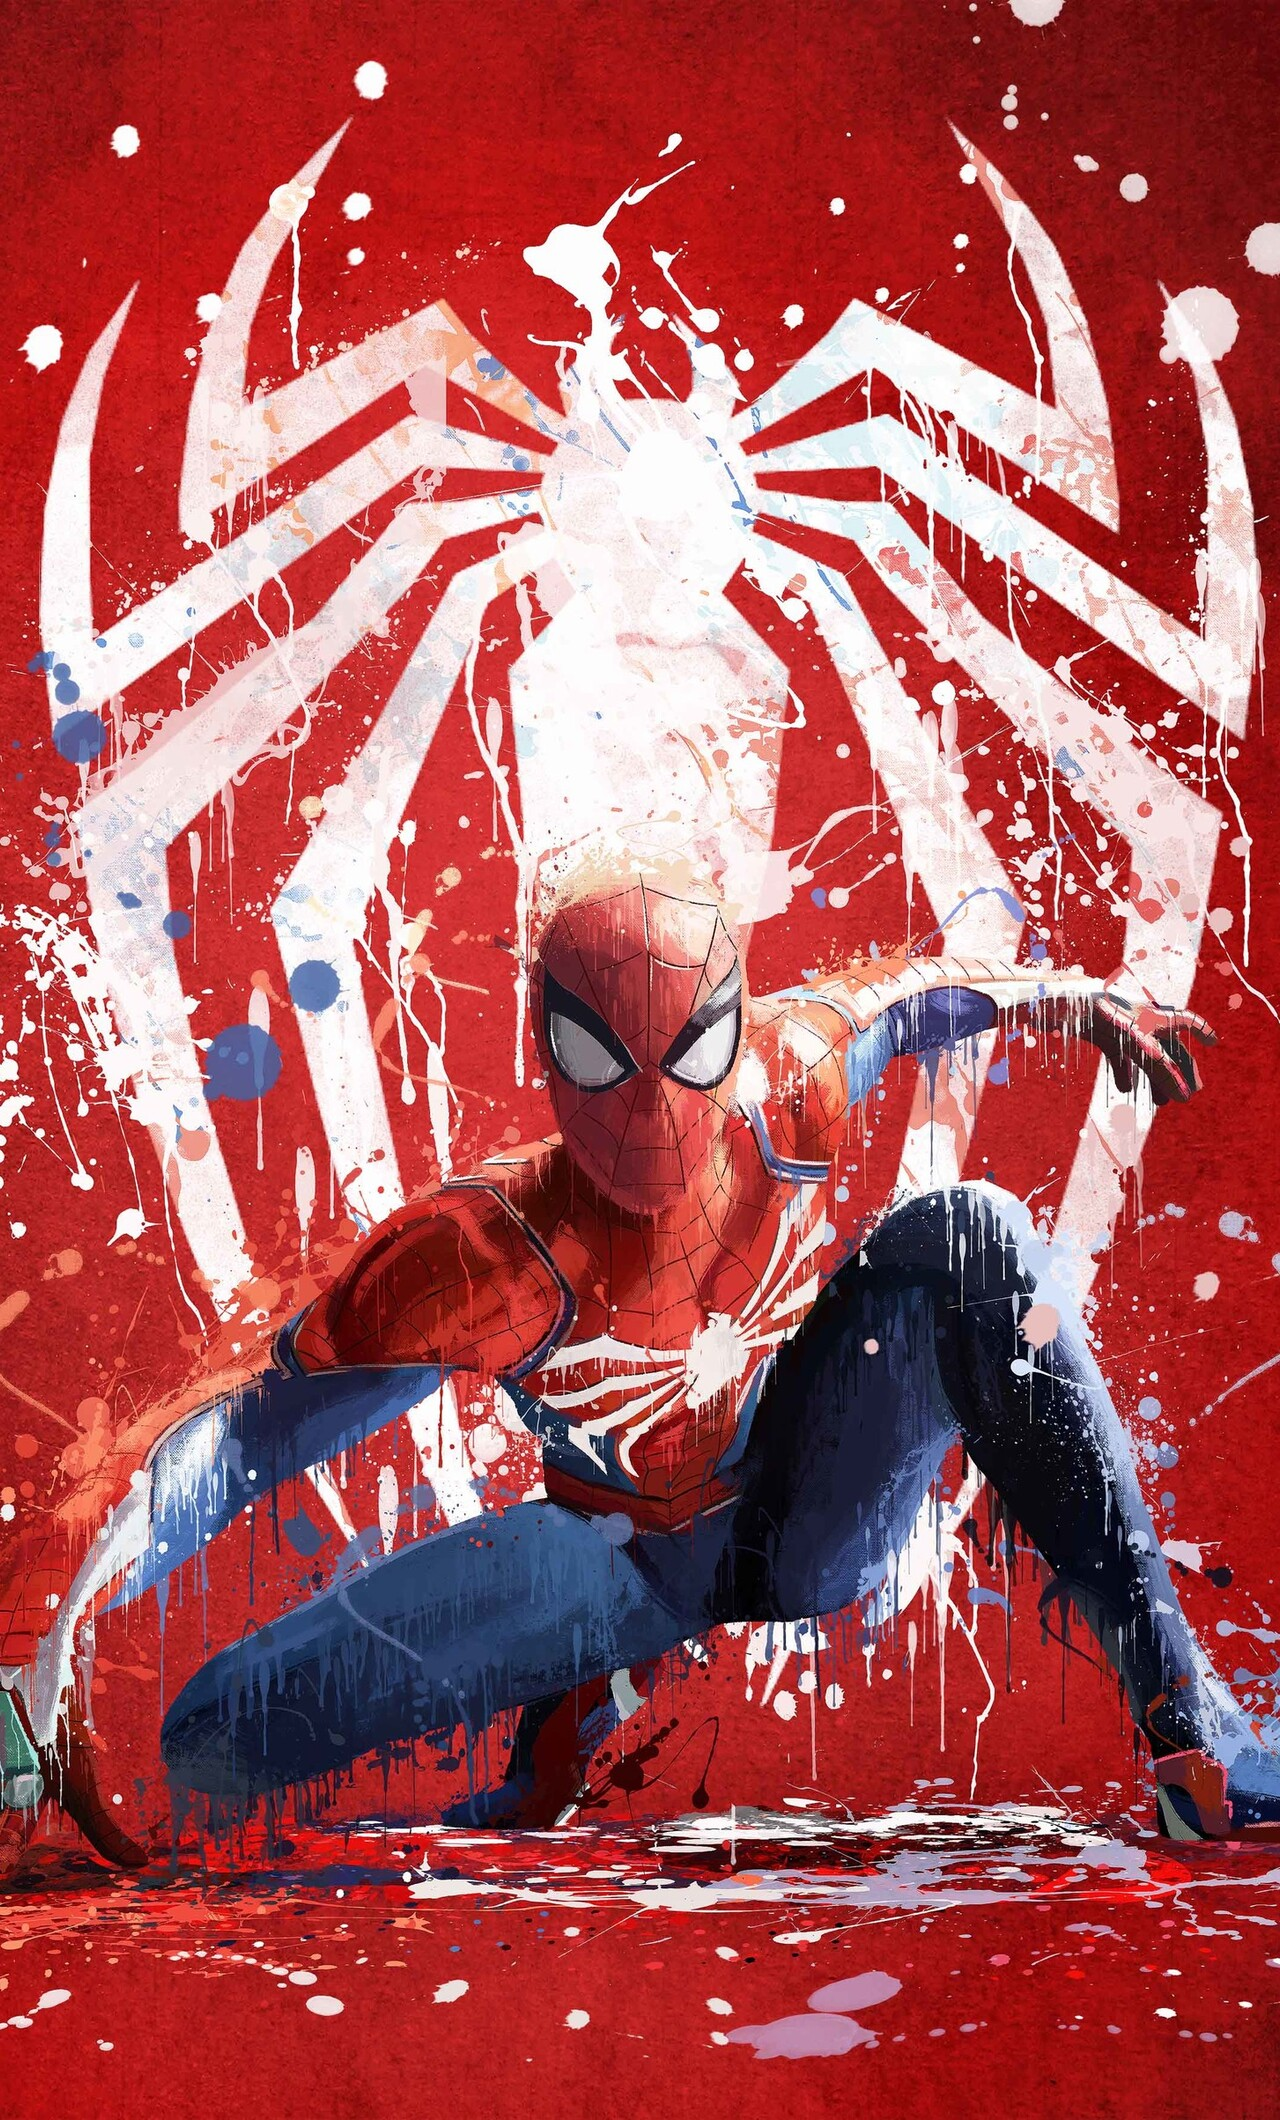 1280x2120 spiderman ps4 art 2018 iphone 6 hd 4k - Iphone 6 spiderman wallpaper ...